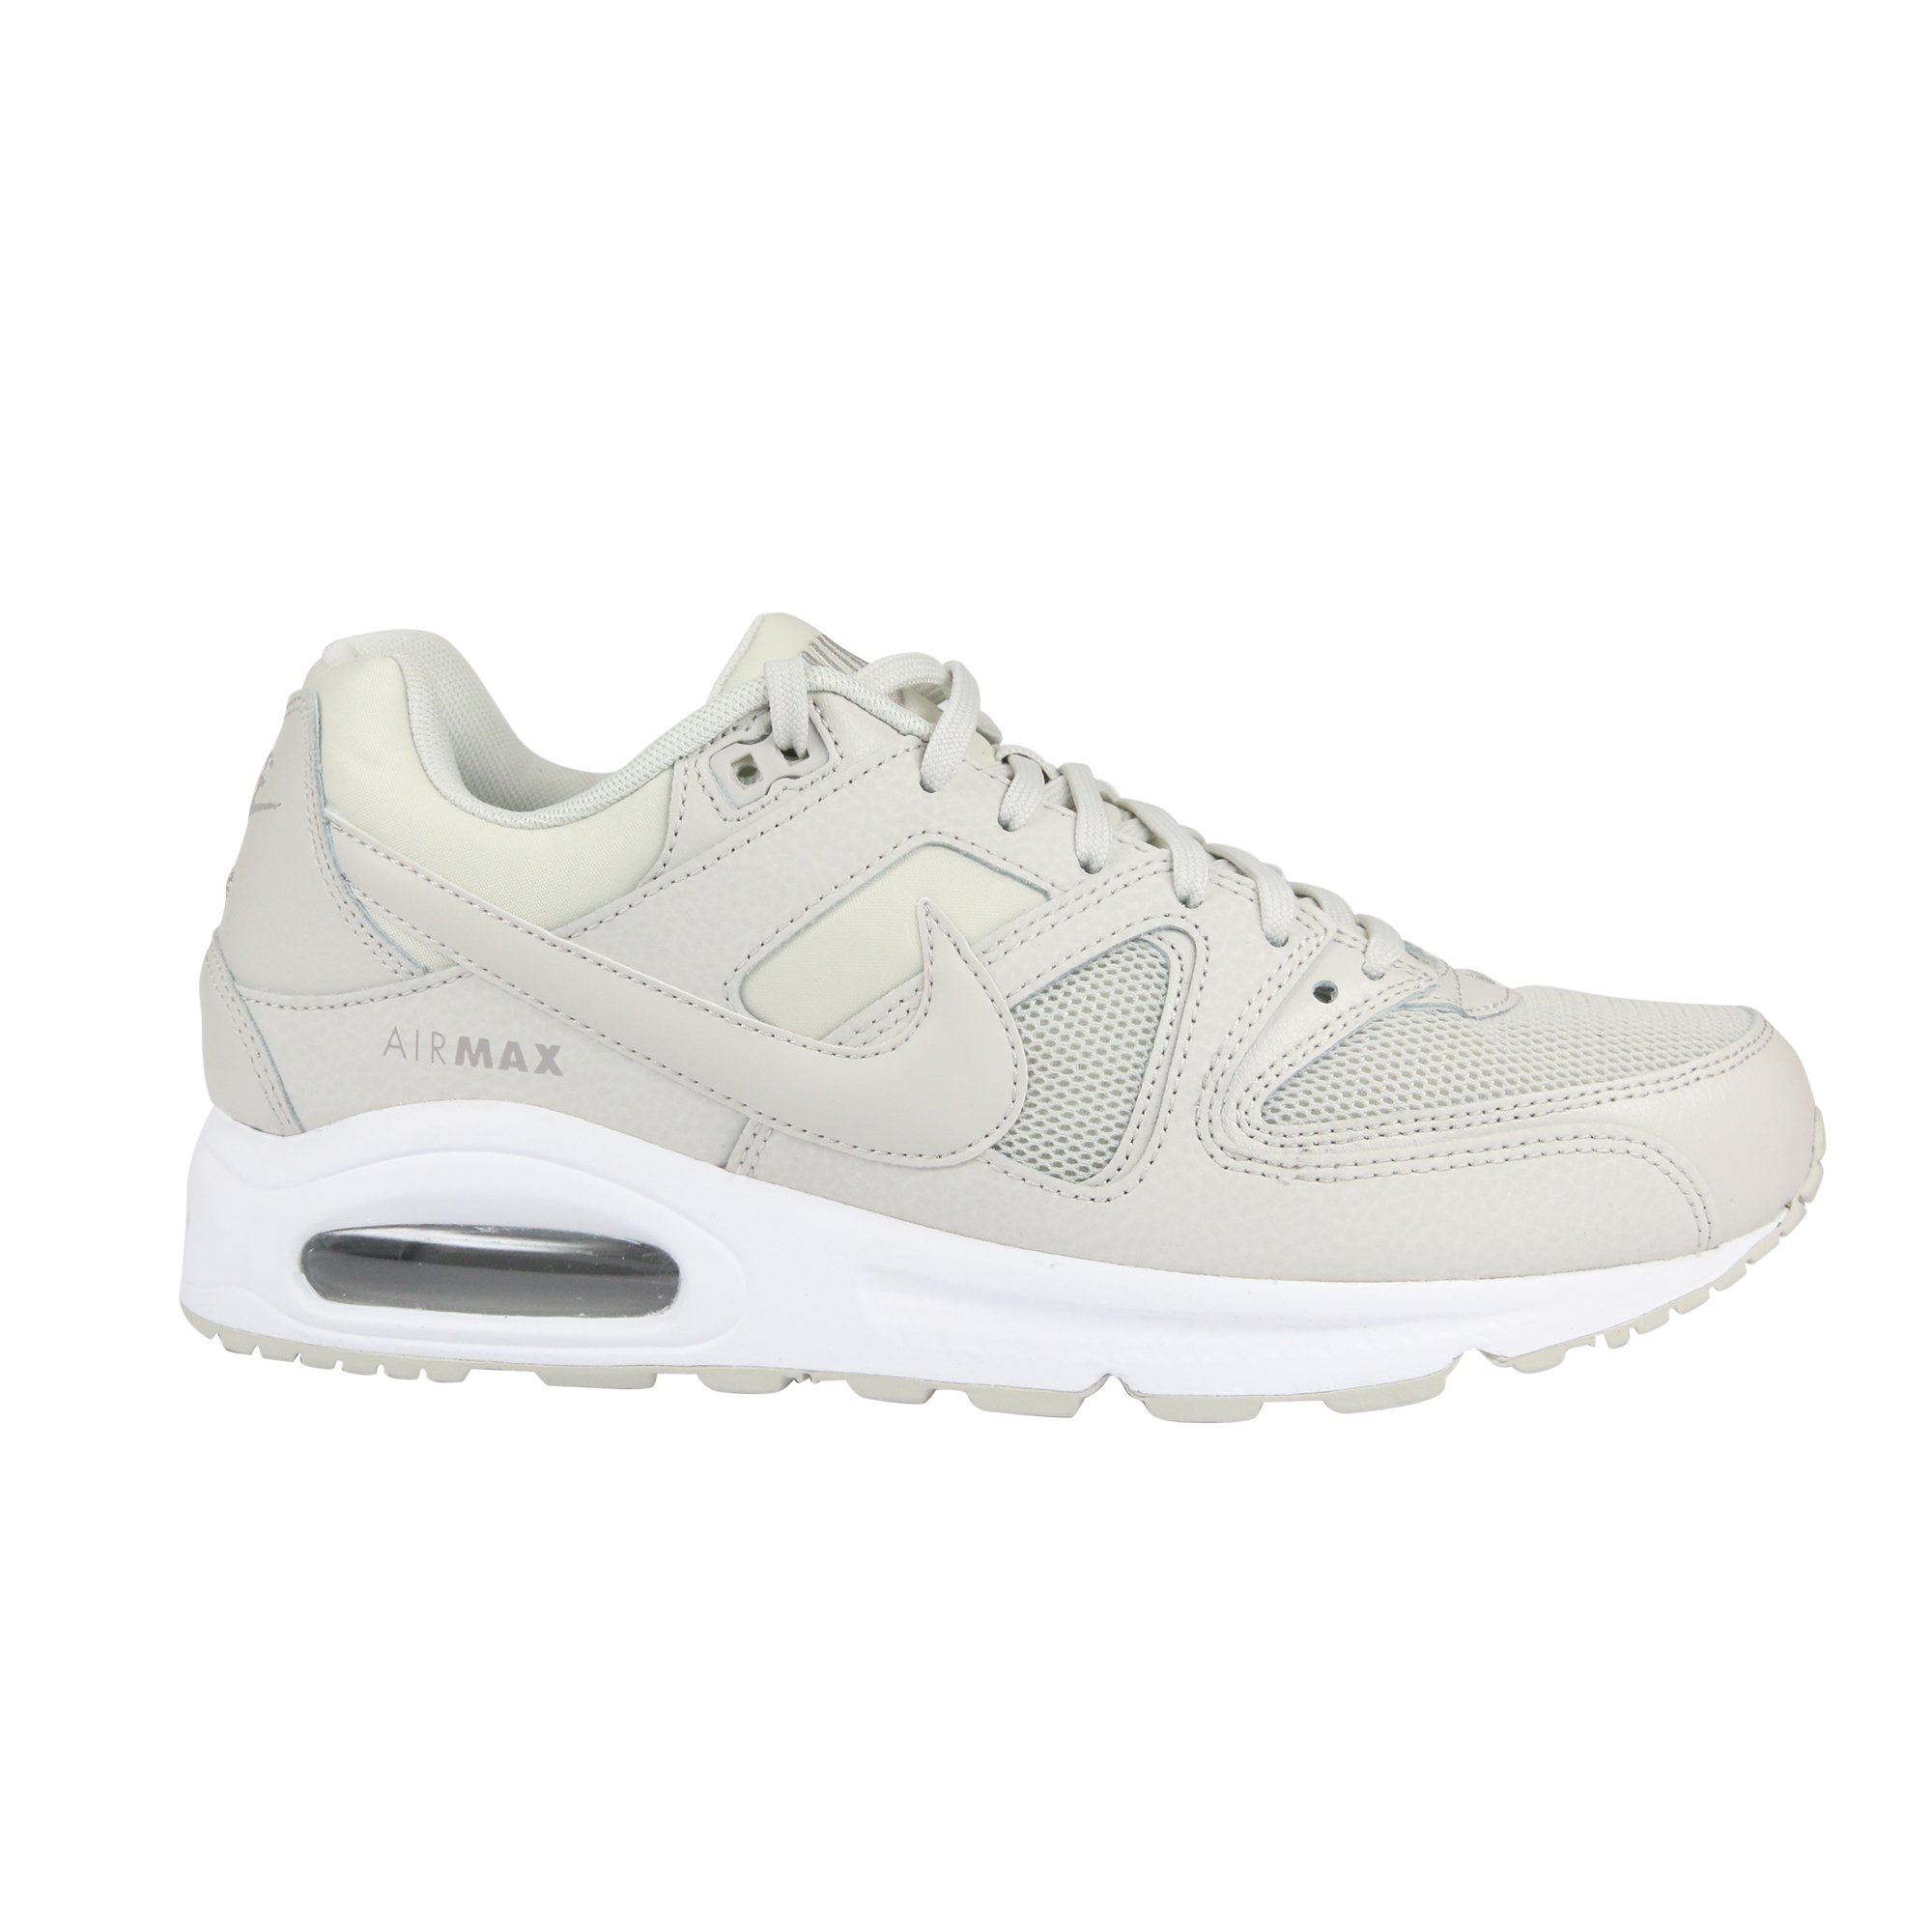 NIKE Womens Air Max Command Running Trainers 397690 Sneakers Shoes (UK 7 US 9.5 EU 41, Light Bone White 018)